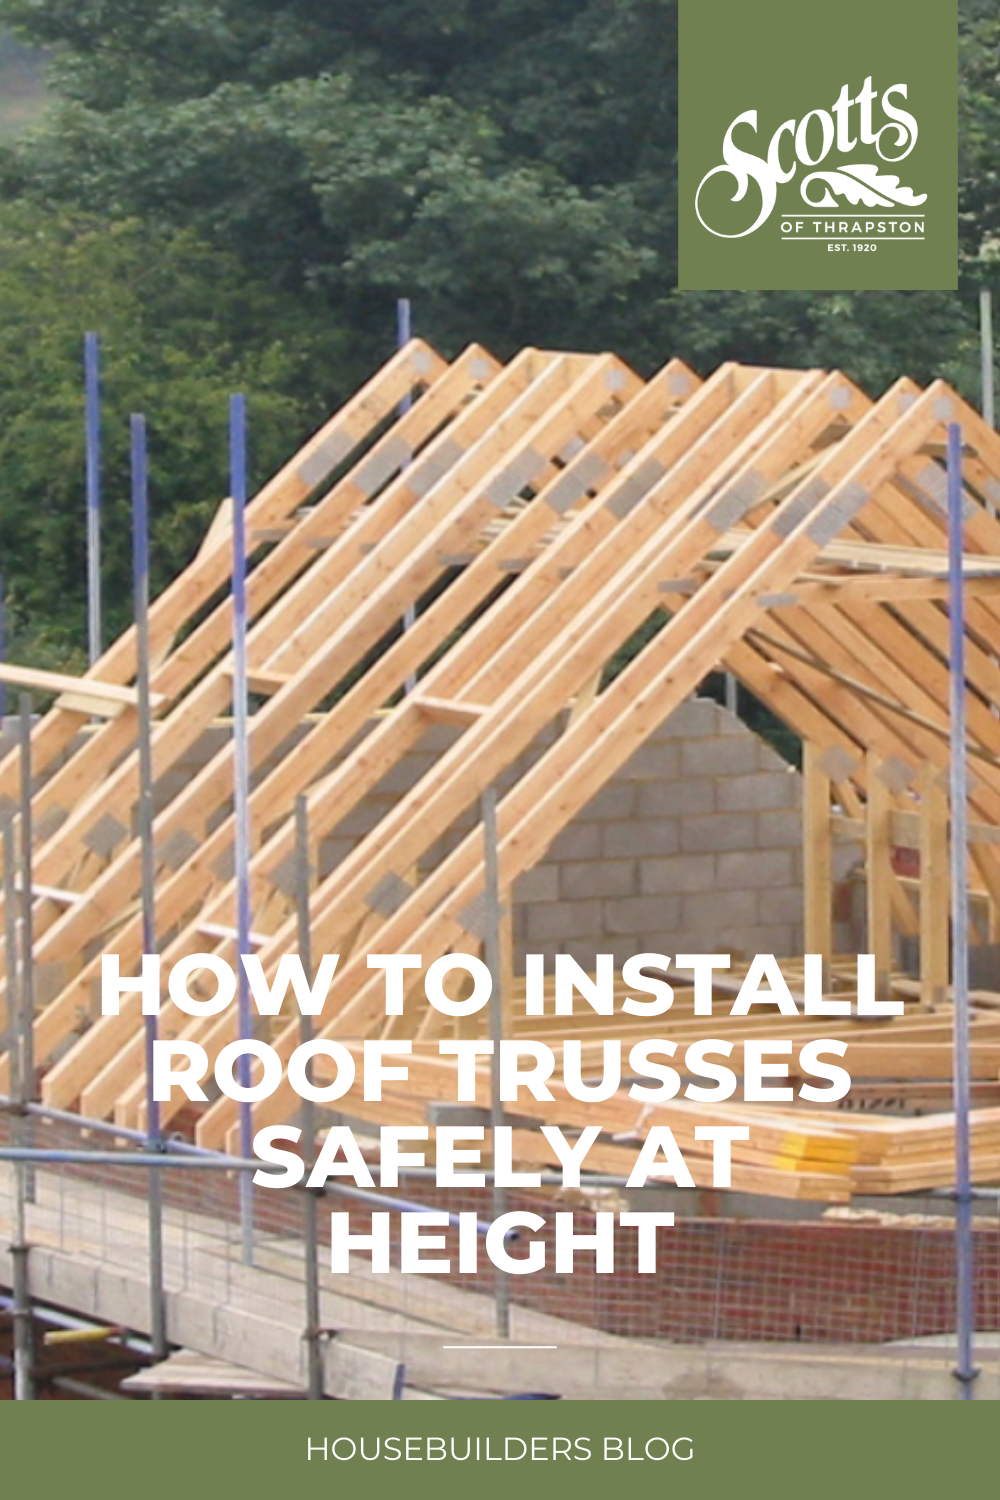 How To Install Roof Trusses Safely At Height In 2020 Roof Installation Roof Trusses Installation